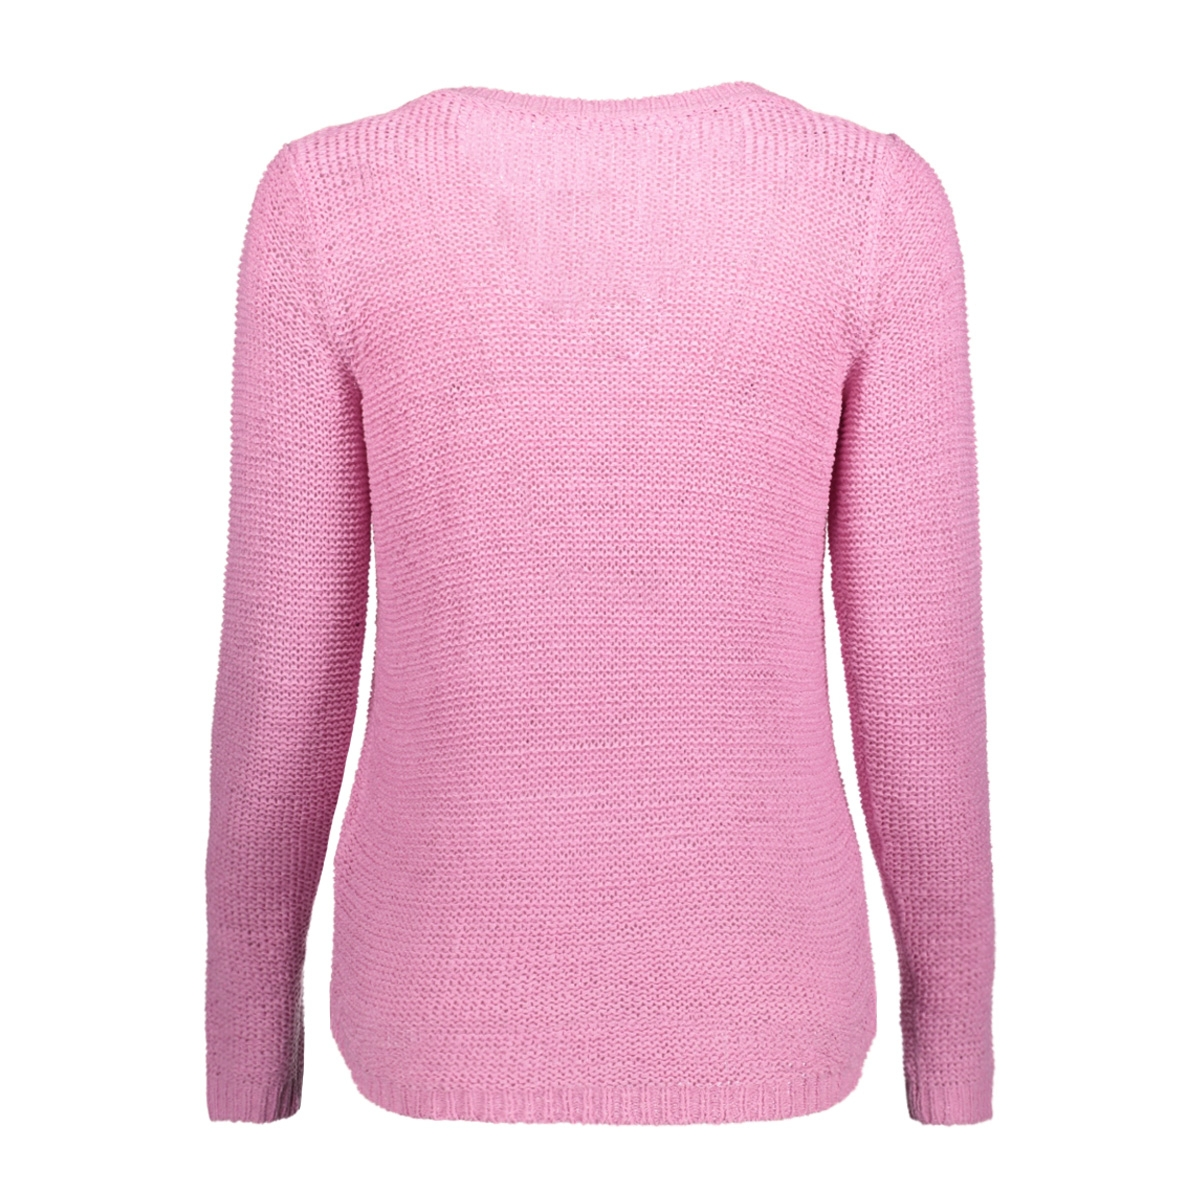 onlgeena xo l/s pullover knt noos 15113356 only trui begonia pink